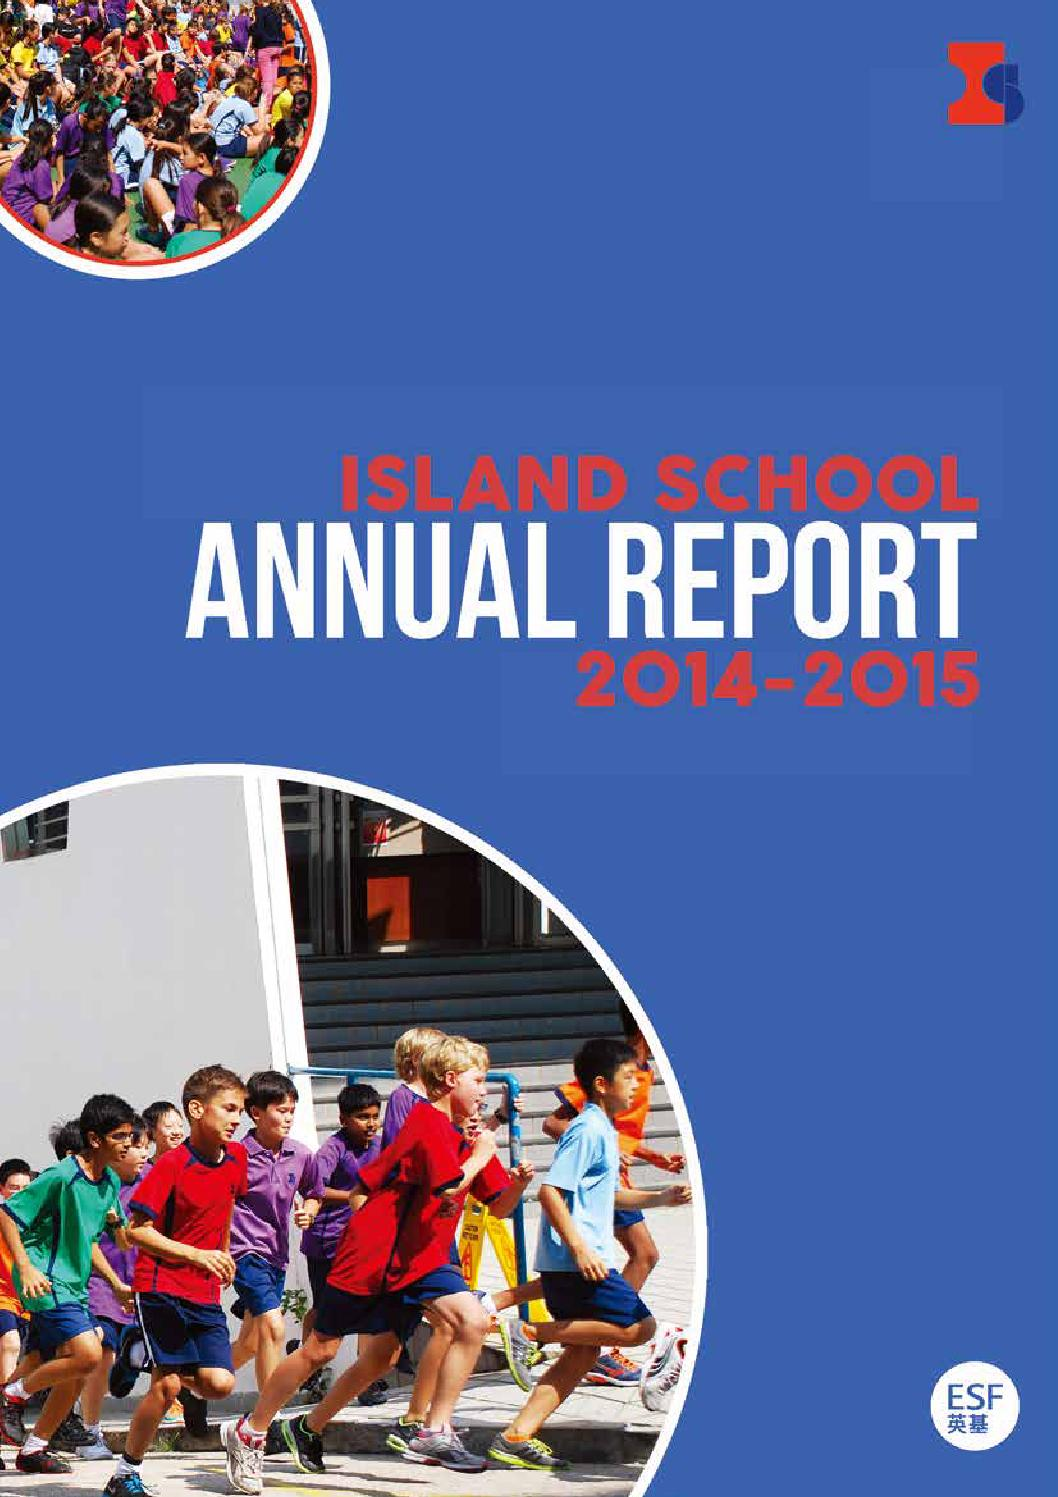 What To Sell >> Island School Annual Report 2014-2015 by Samantha Y. Fong ...